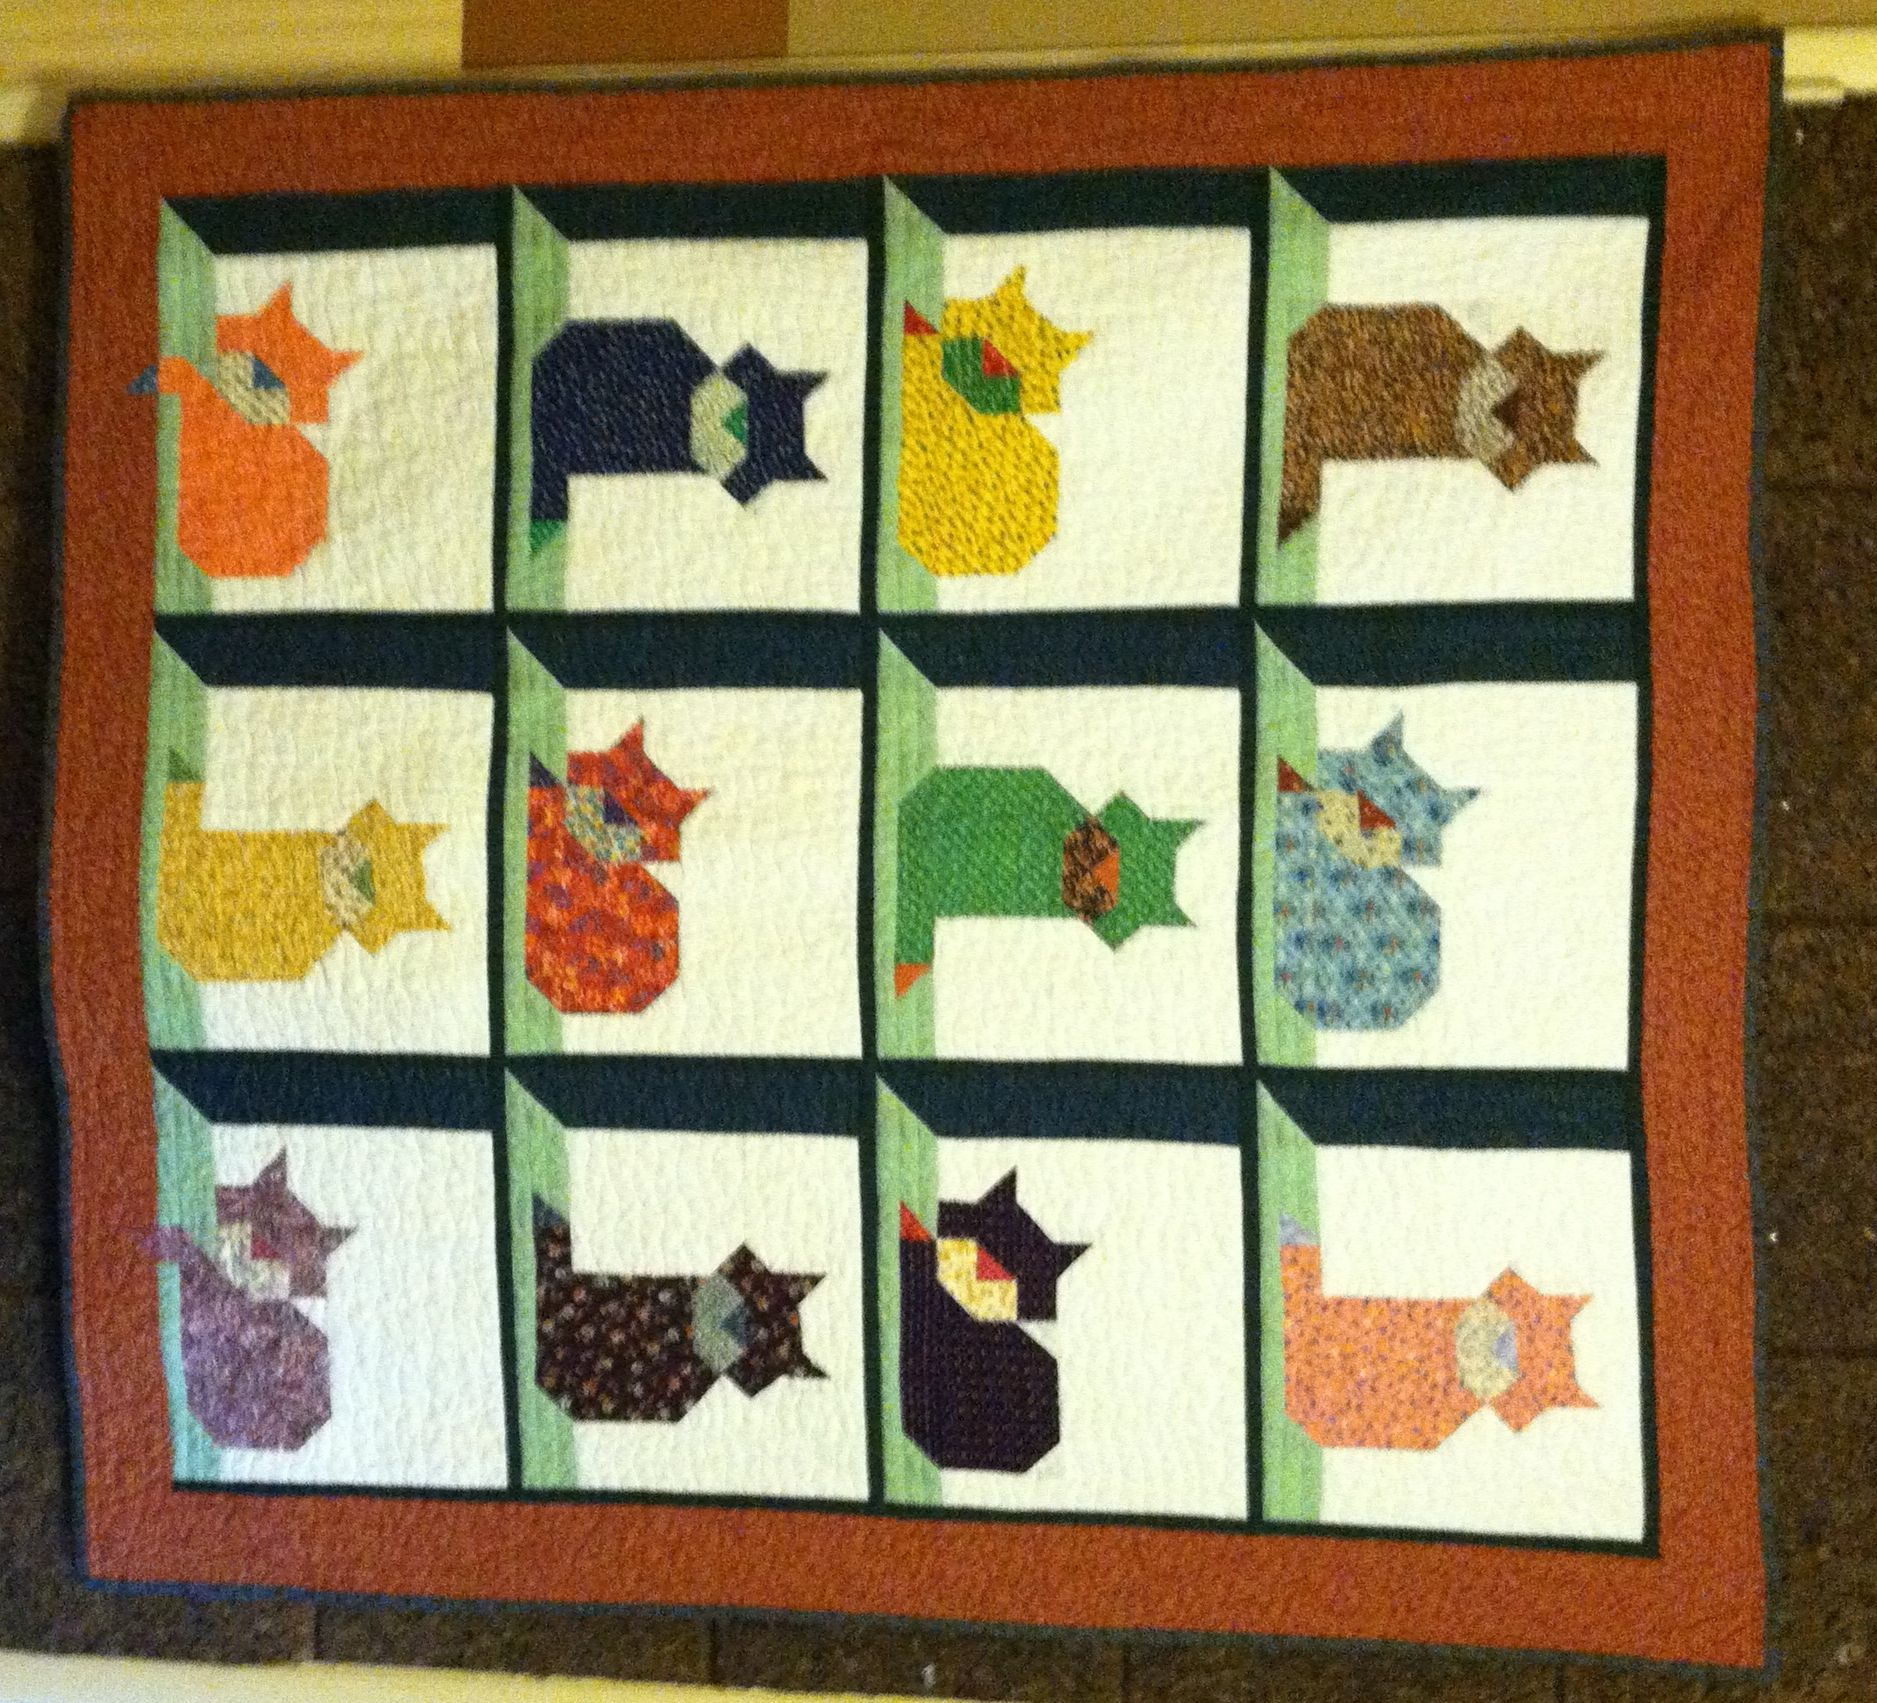 Every cat lover out there deserve a cute cat quilt like